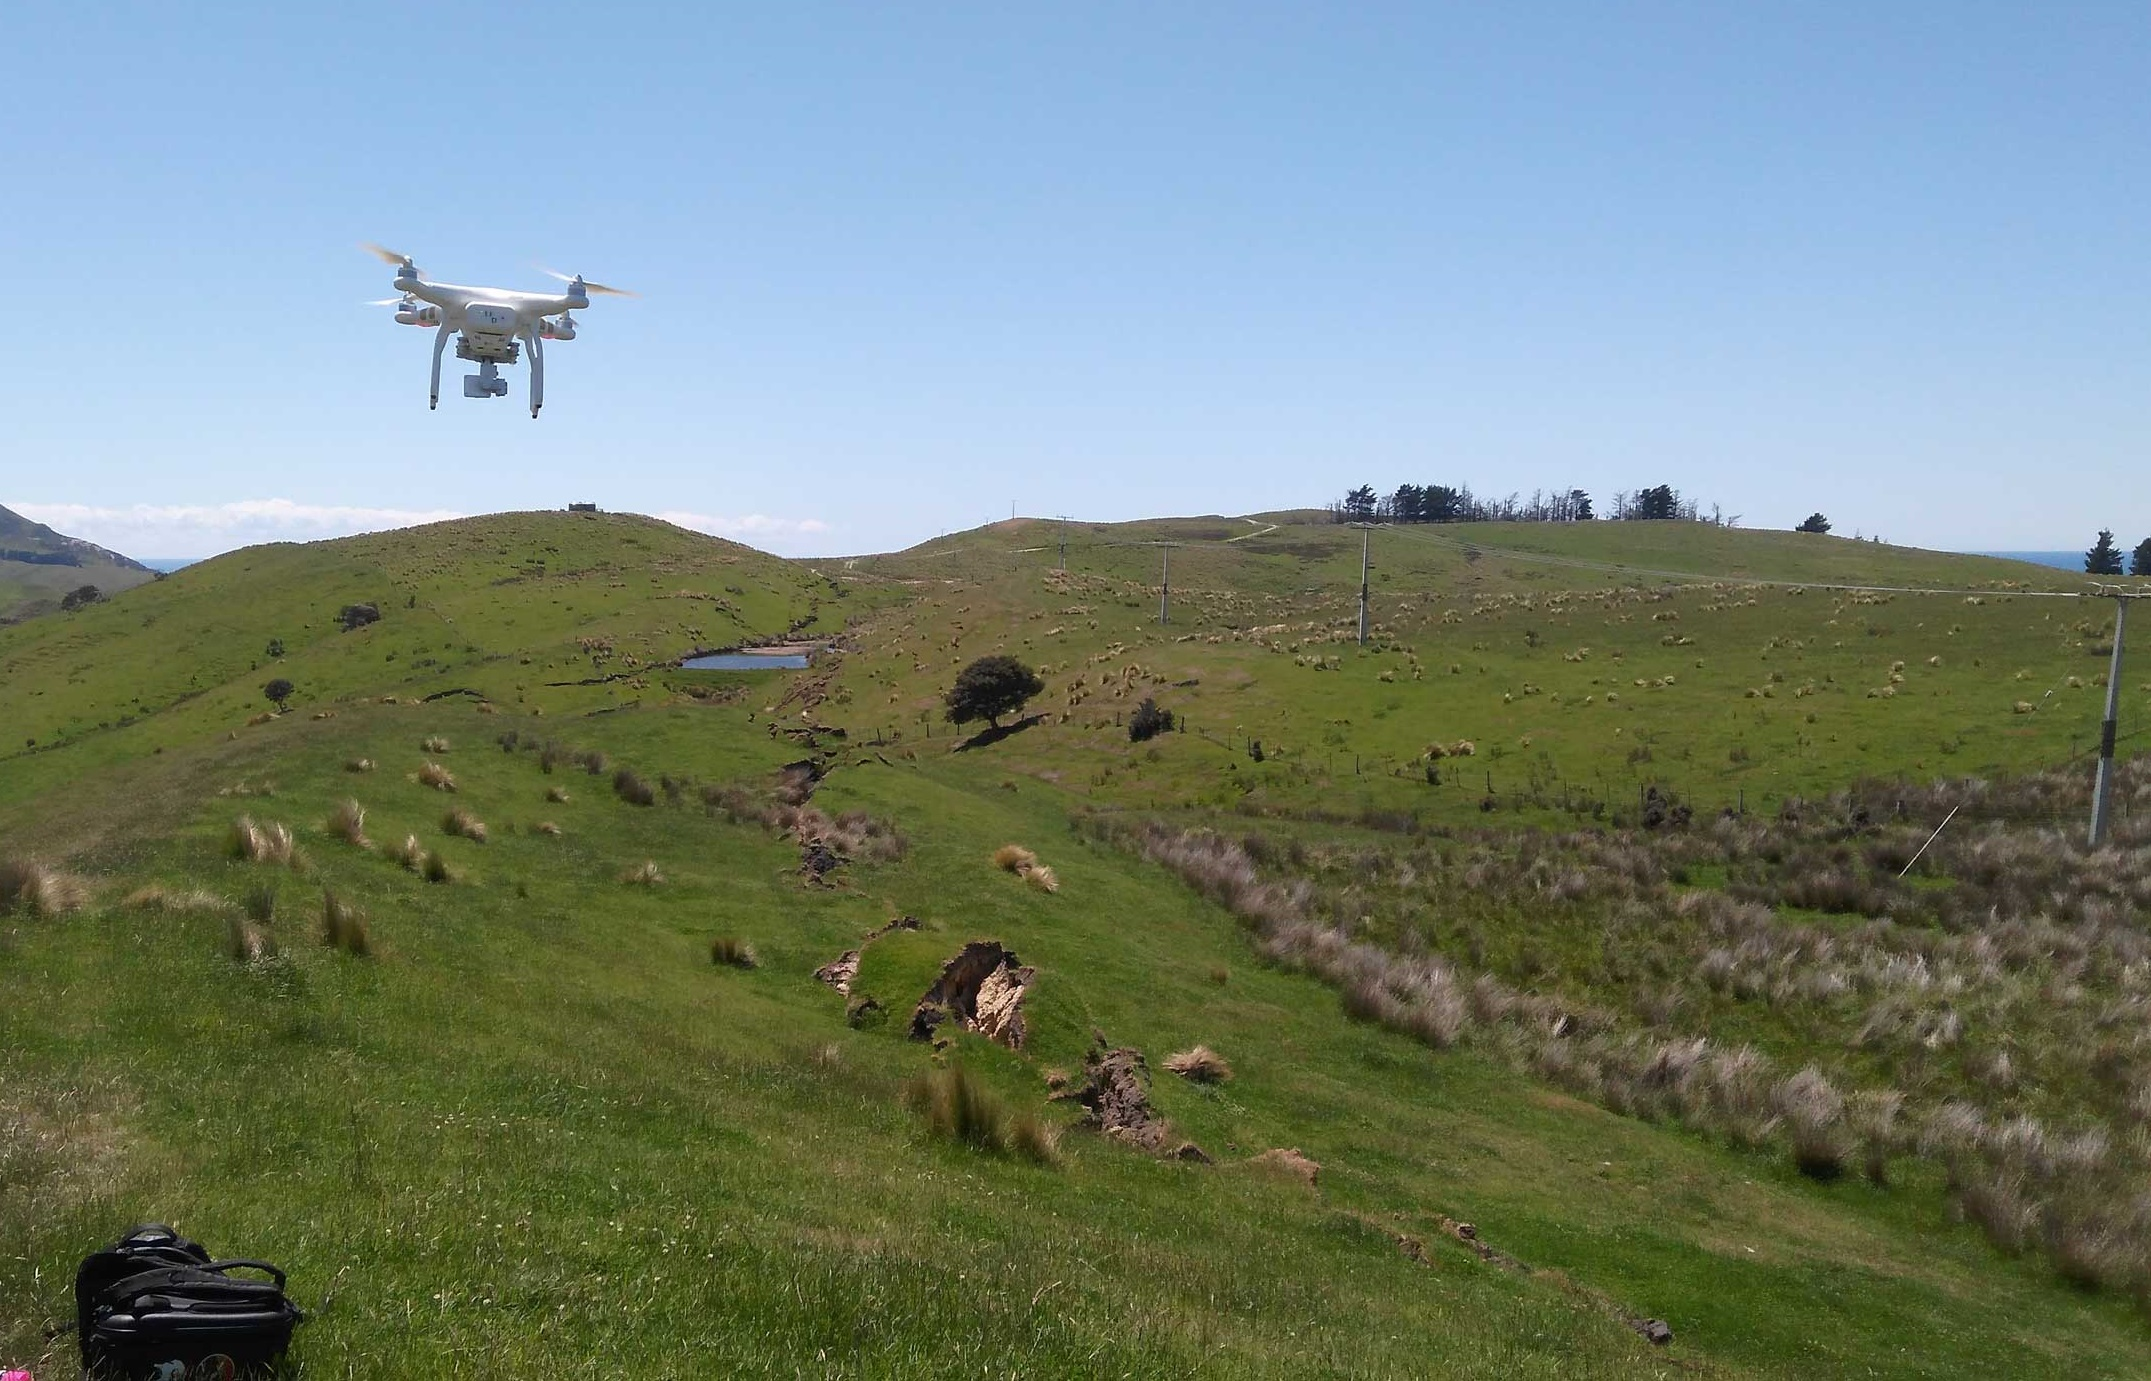 u-m-researchers-map-new-zealand-landslides-with-satellites-drones-helicopters-hiking-boots-drone-orig-20161213 Drones, Helicopters and Satellites Map out Earthquake-Stricken Areas